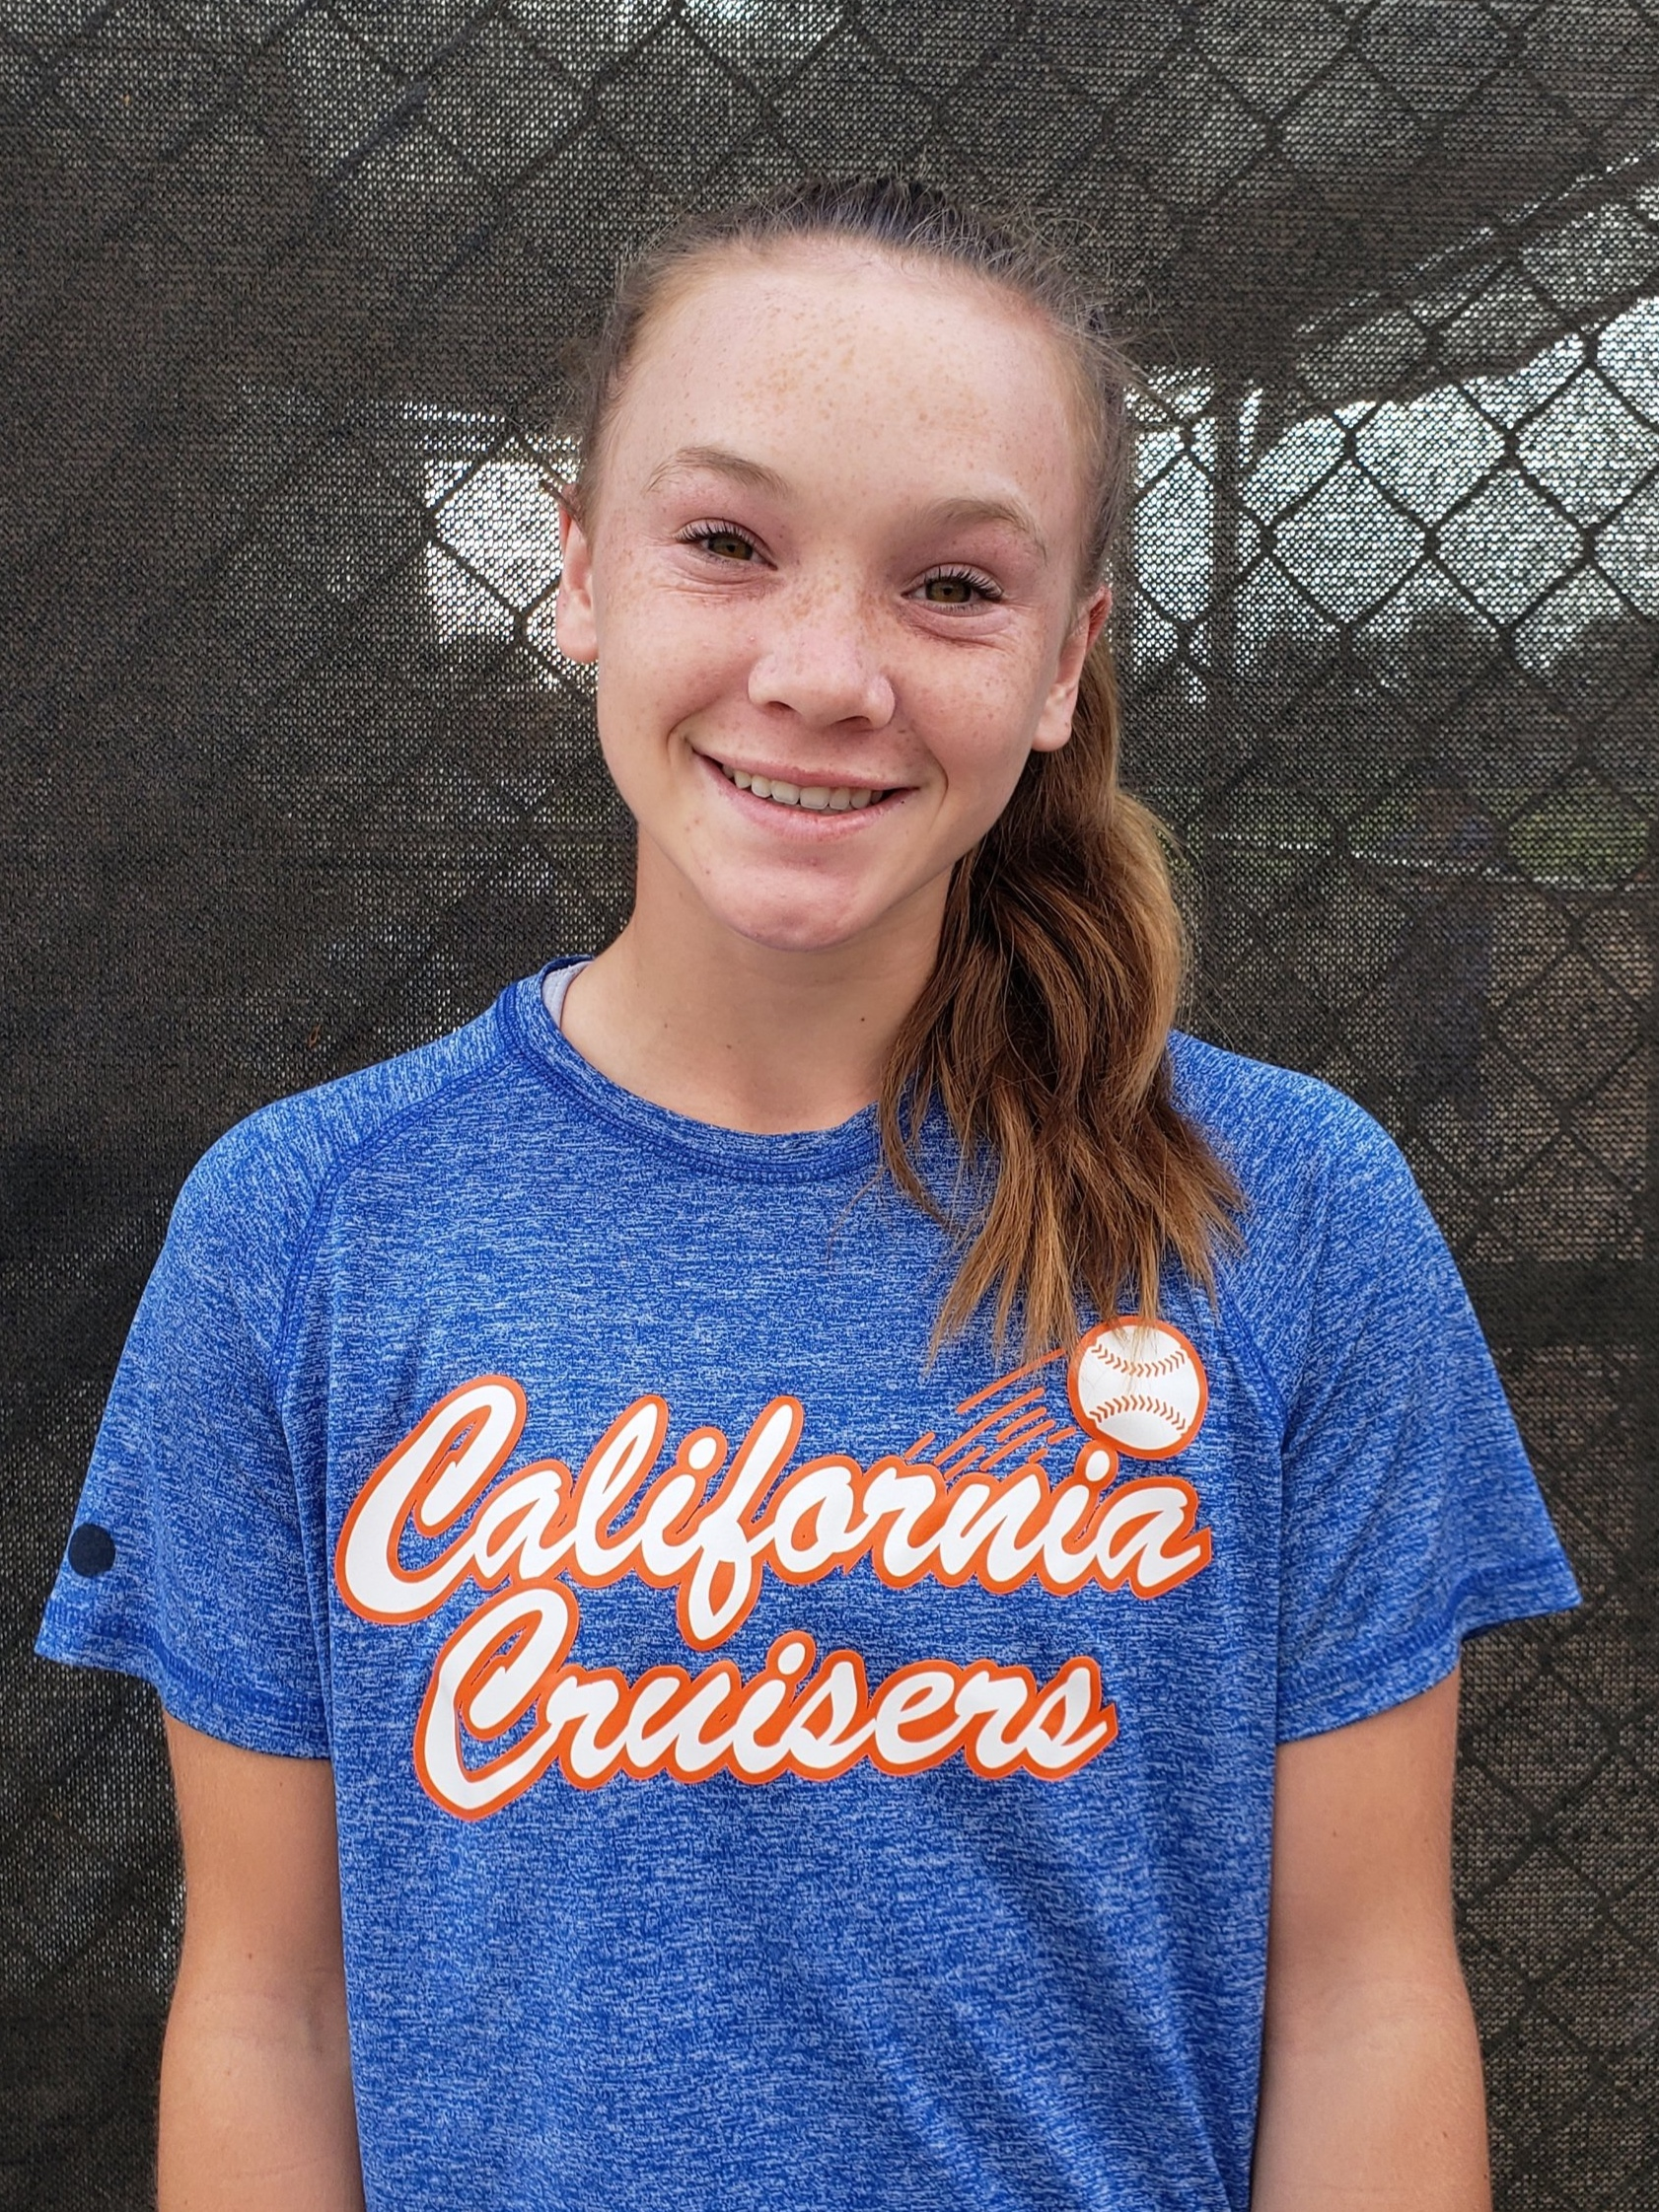 """#7 MADYSON CLARK   Highlight Video: Coming Soon  Grad Year: 2022  Position(s): SS/C  B/T: R/R  Height: 5'5""""  High School: Claremont  College: Uncommitted"""